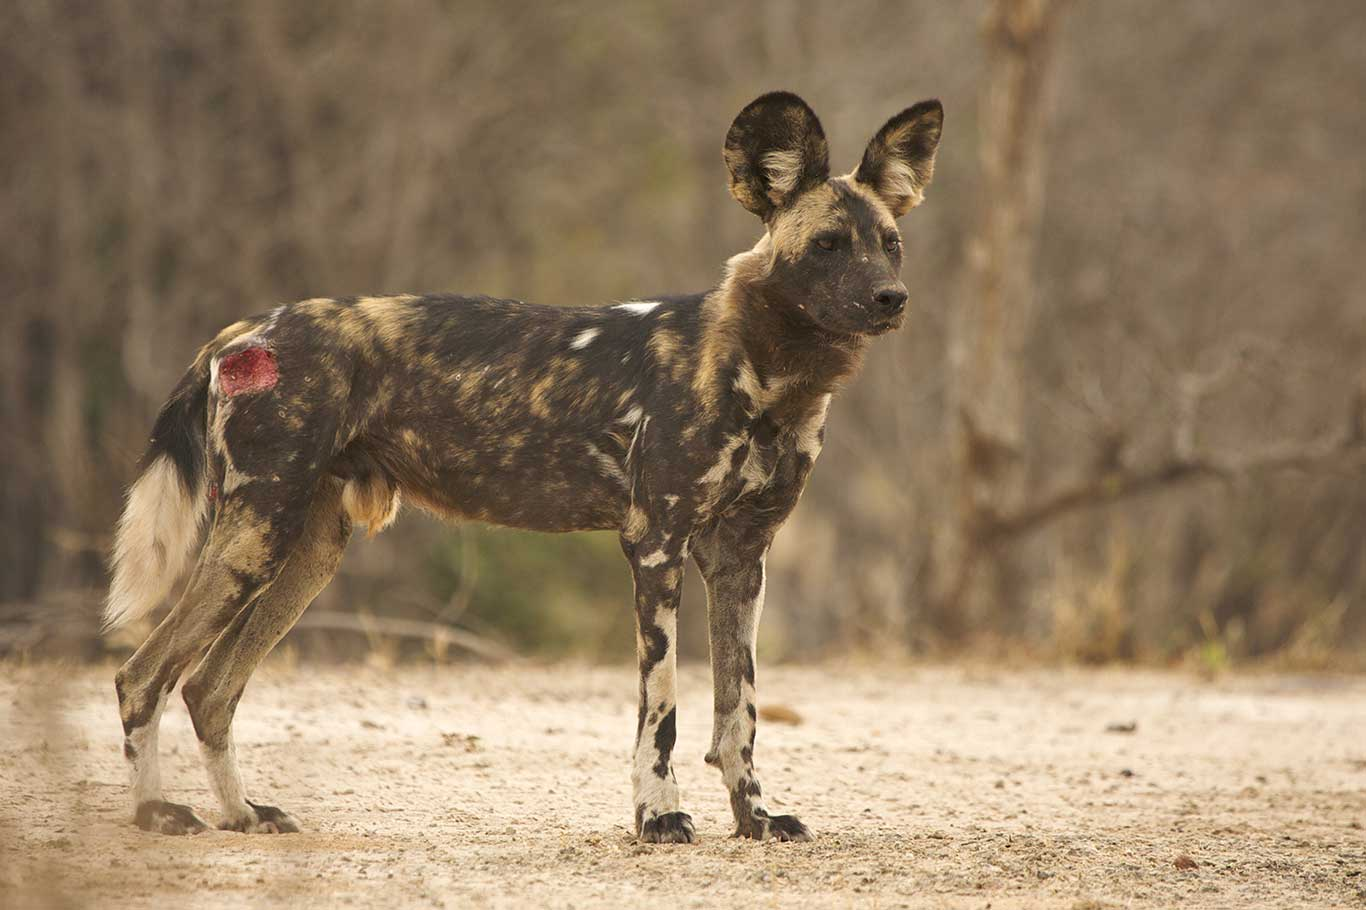 Beautiful Painted Dogs In Grave Danger! 4